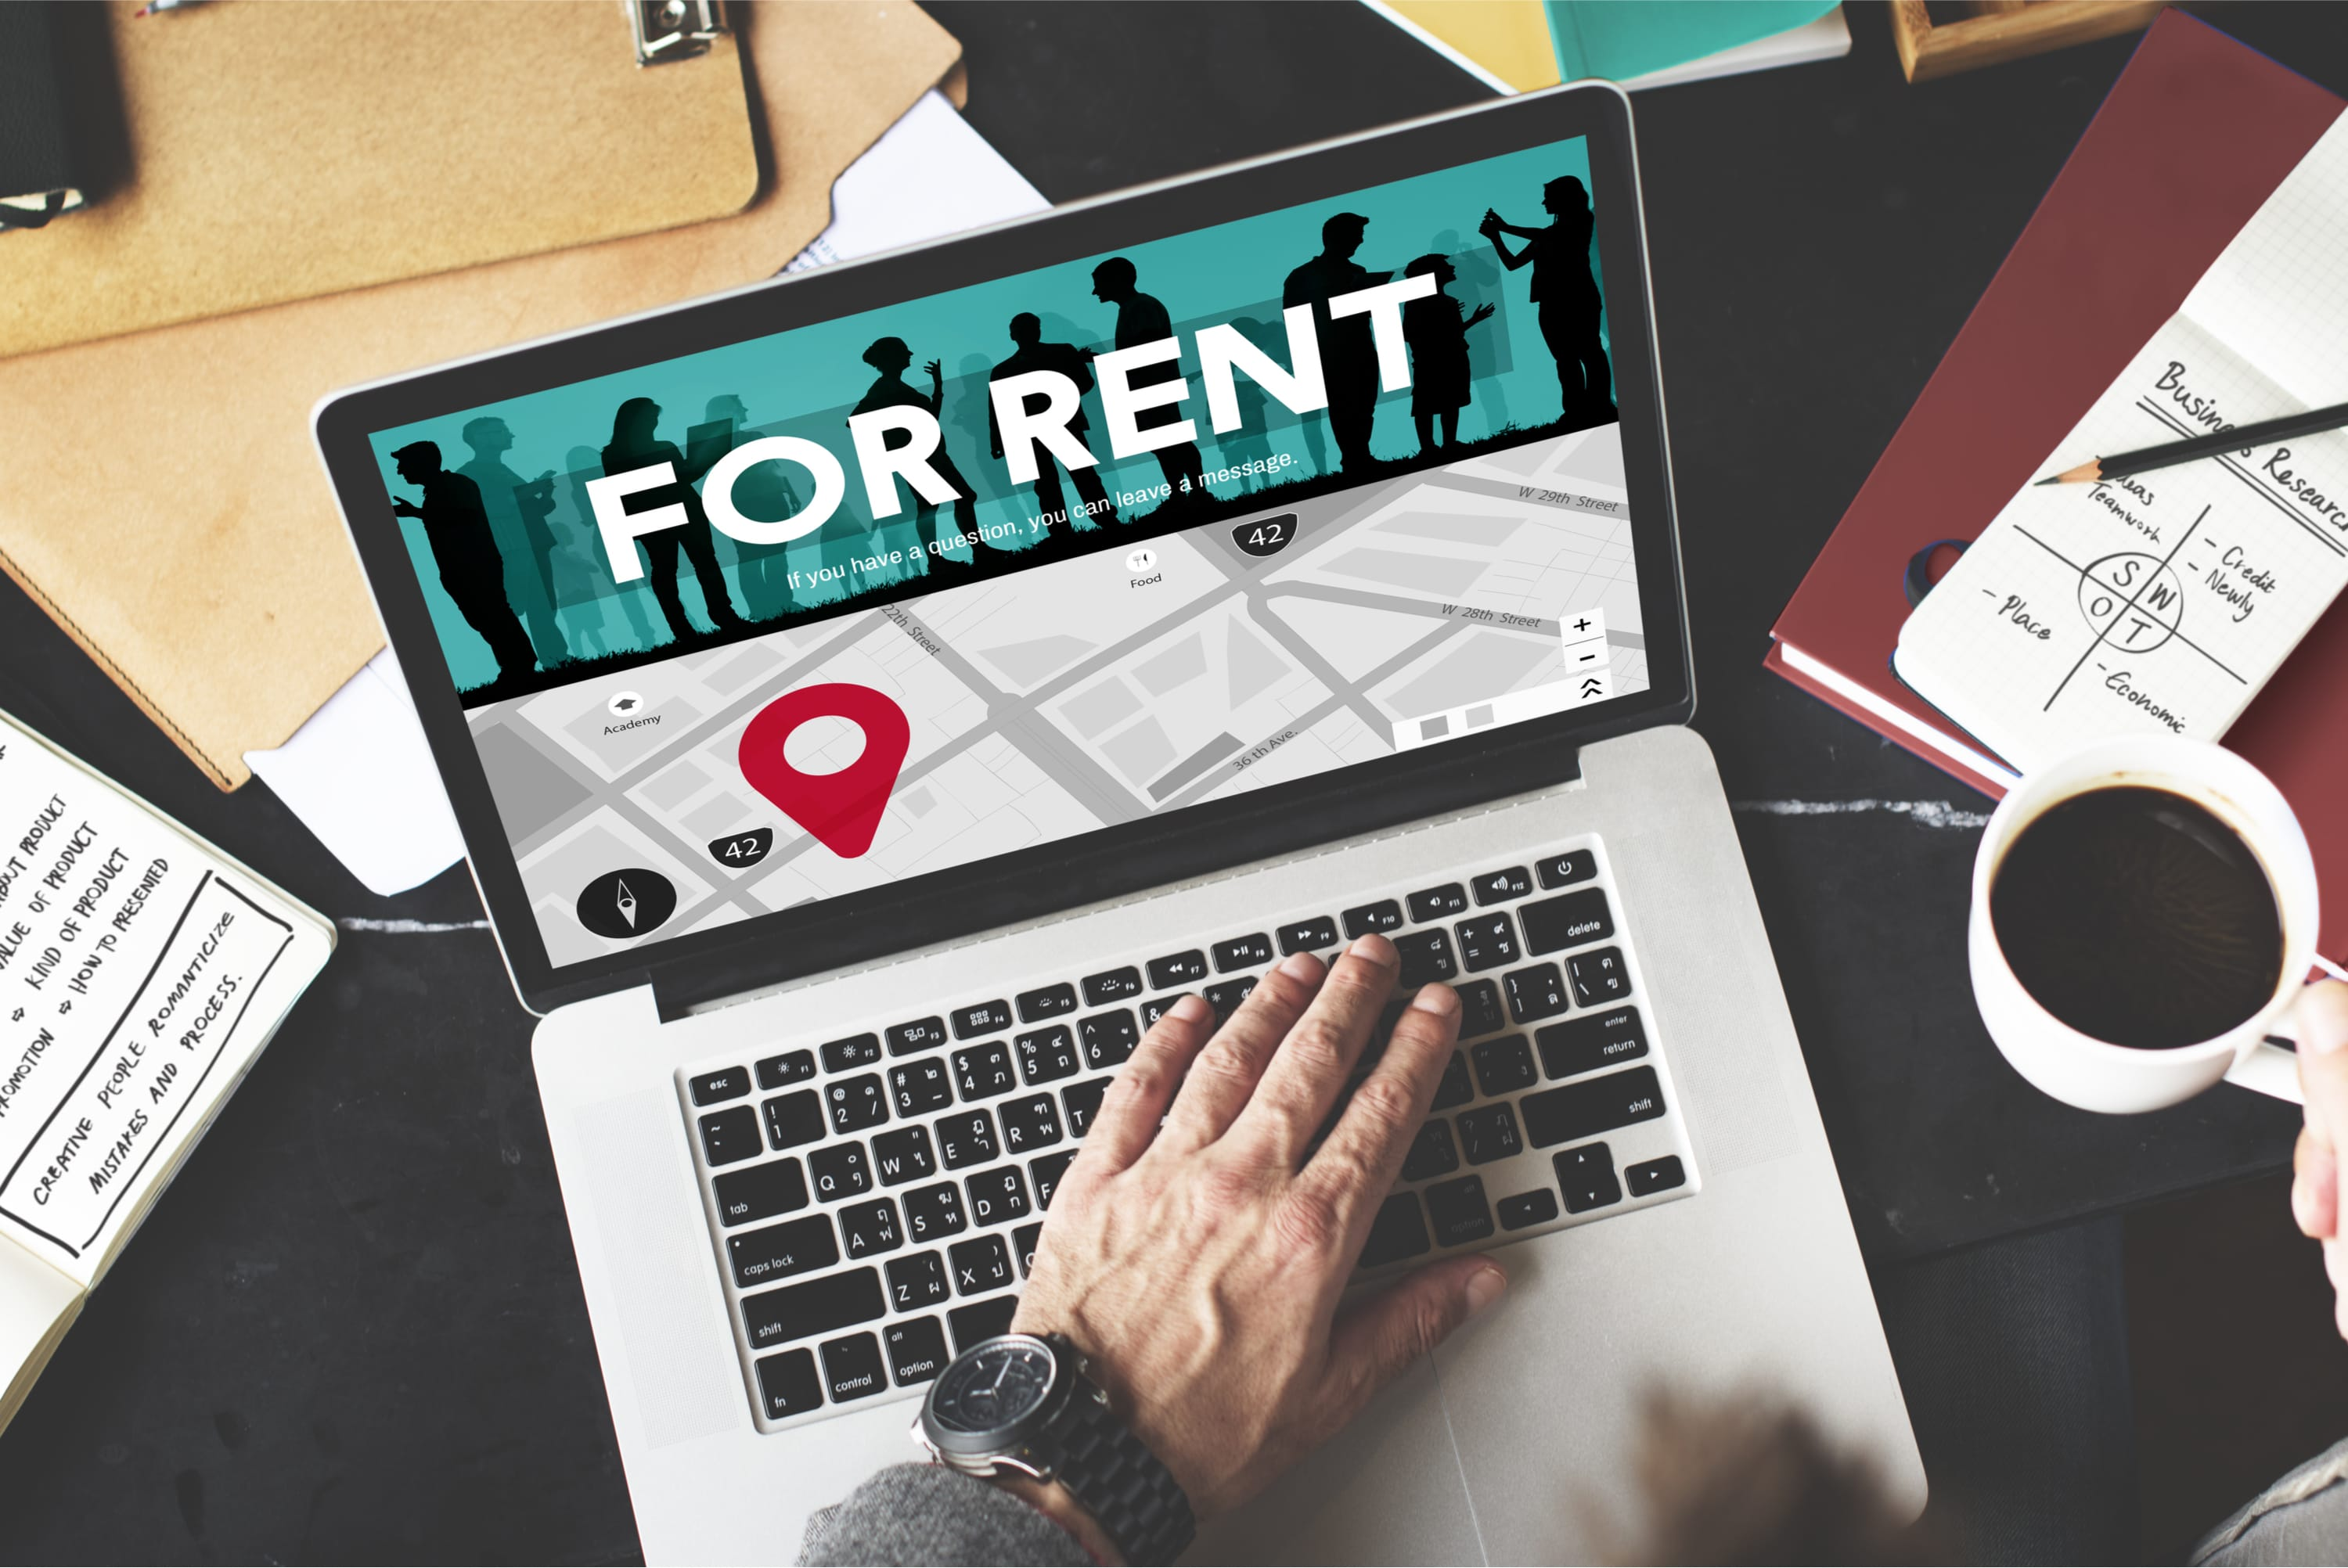 15 Best Cities to Buy a Rental Property for Investment in 2019